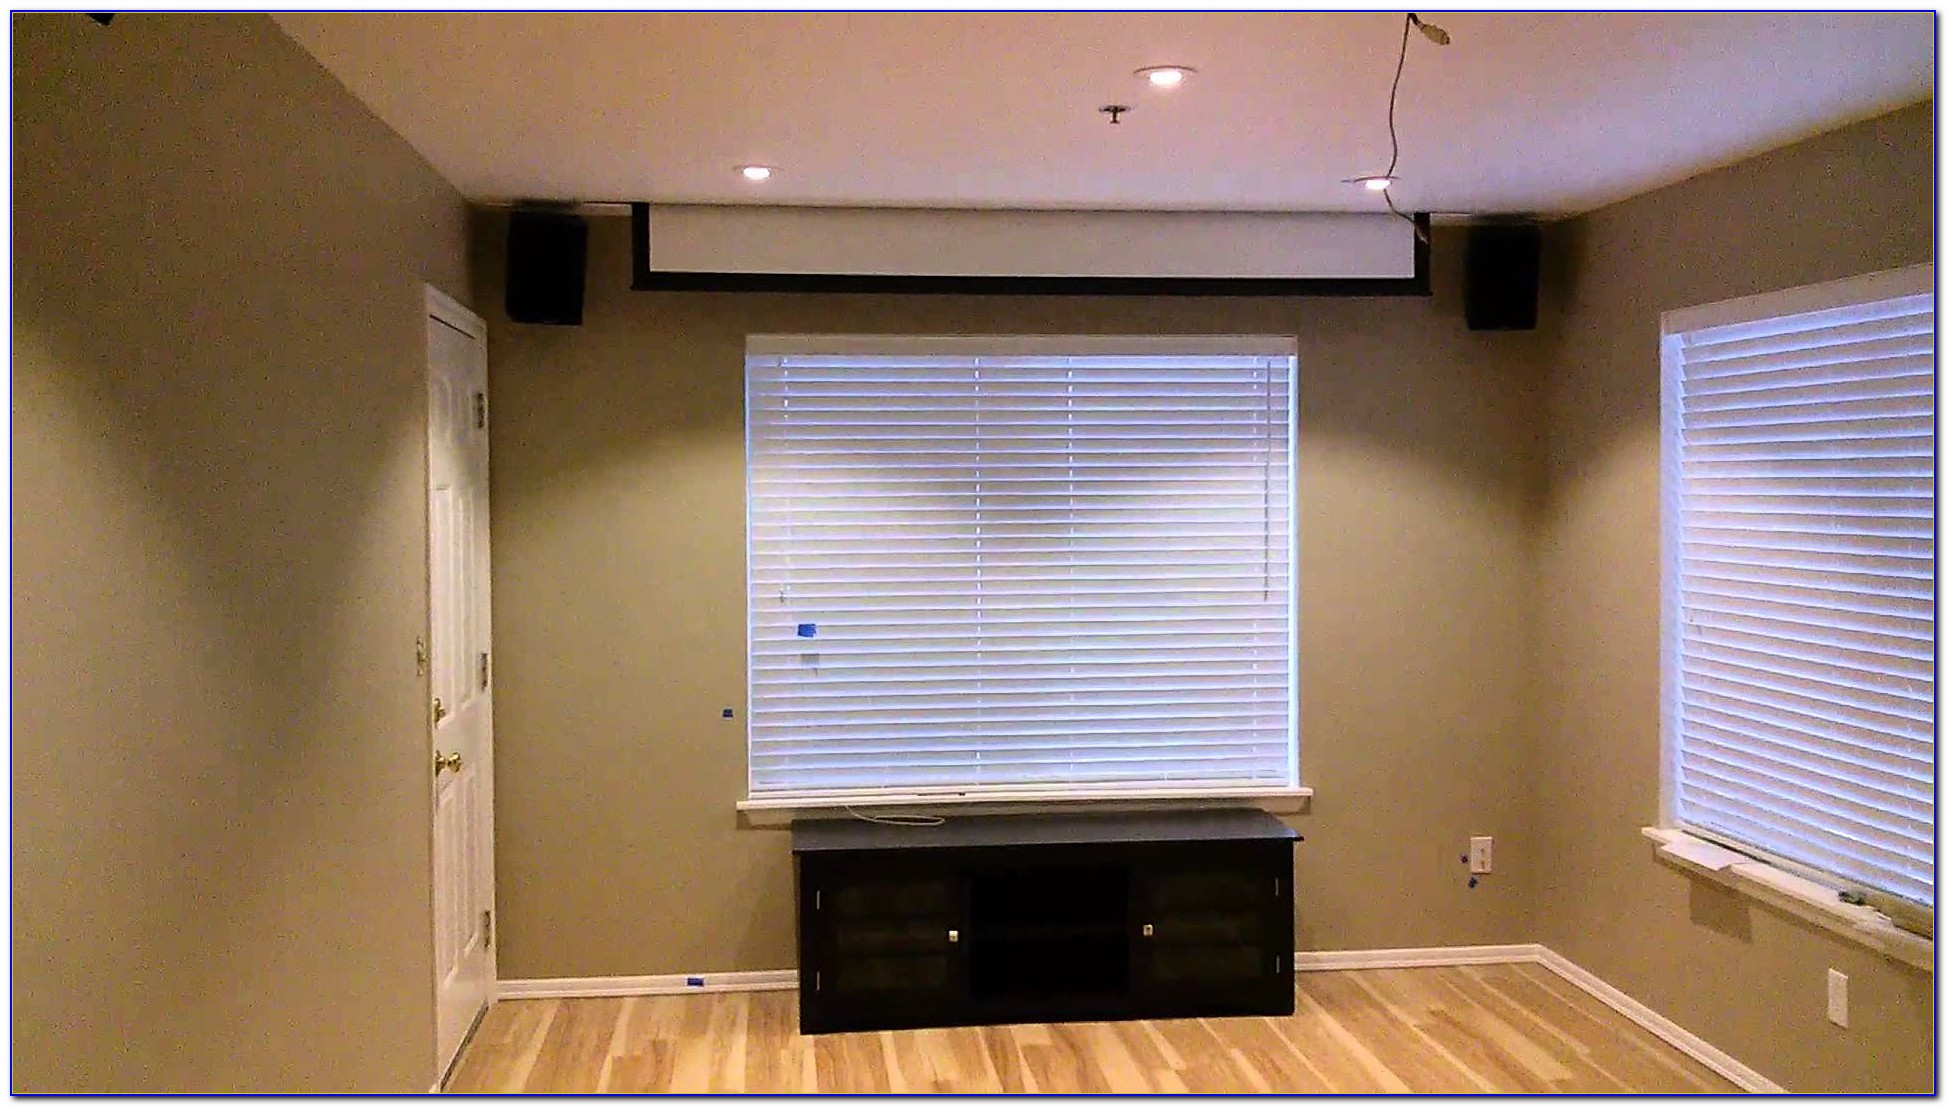 Hang Projector From Vaulted Ceiling